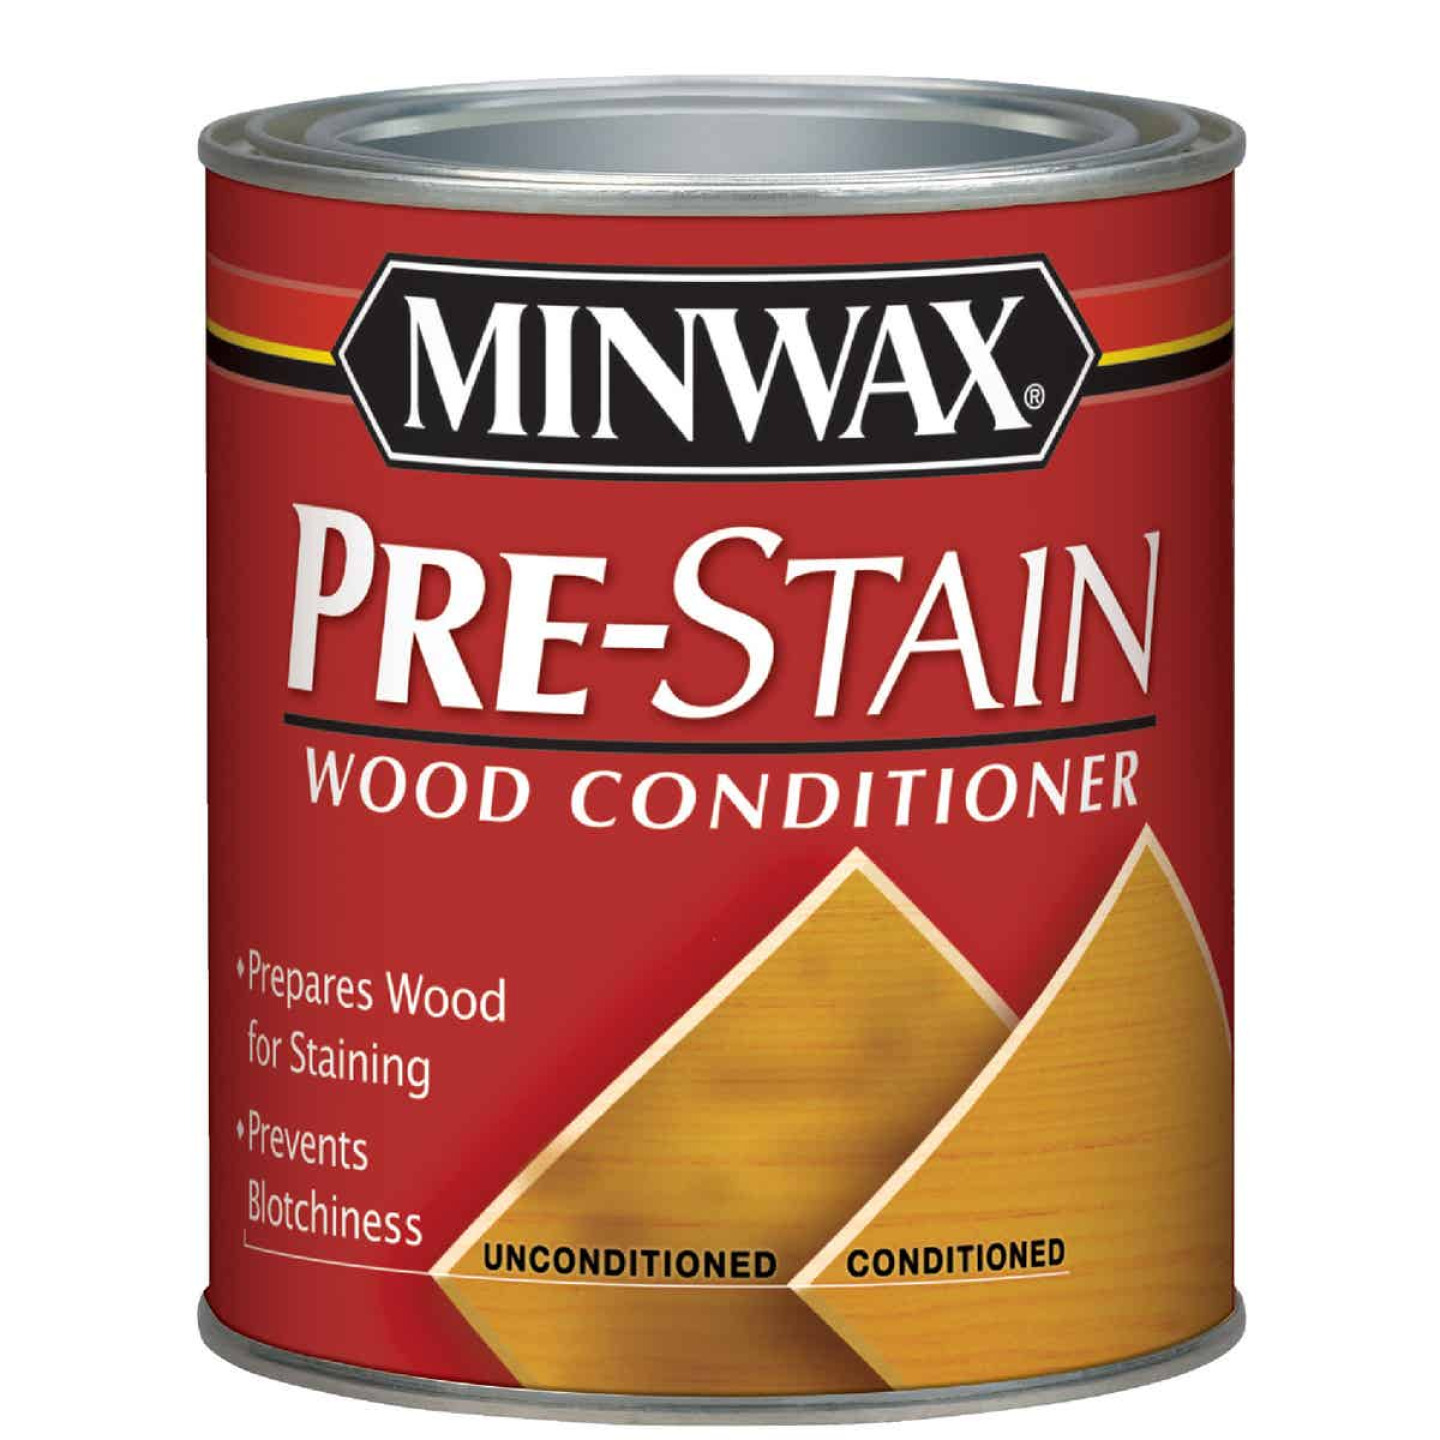 Minwax 1 Qt. Pre-Stain Wood Conditioner Image 1